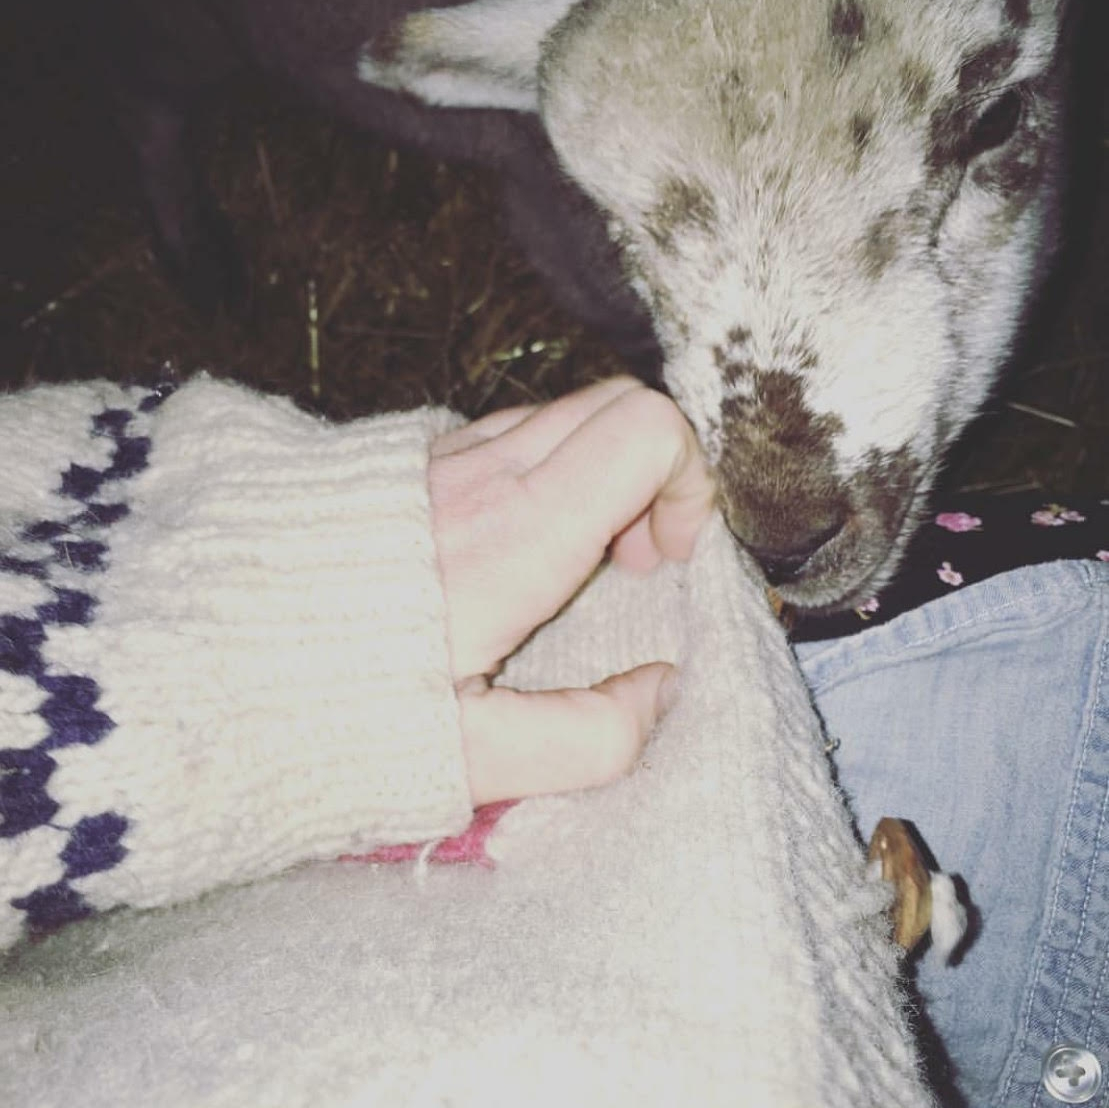 Here is Willie  in the first night or two, trying to eat a button from the wool sweater I would wear when I fed them. I thought if I wore a wool sweater to feed them they would think I was their mama and would feel better about their new home.